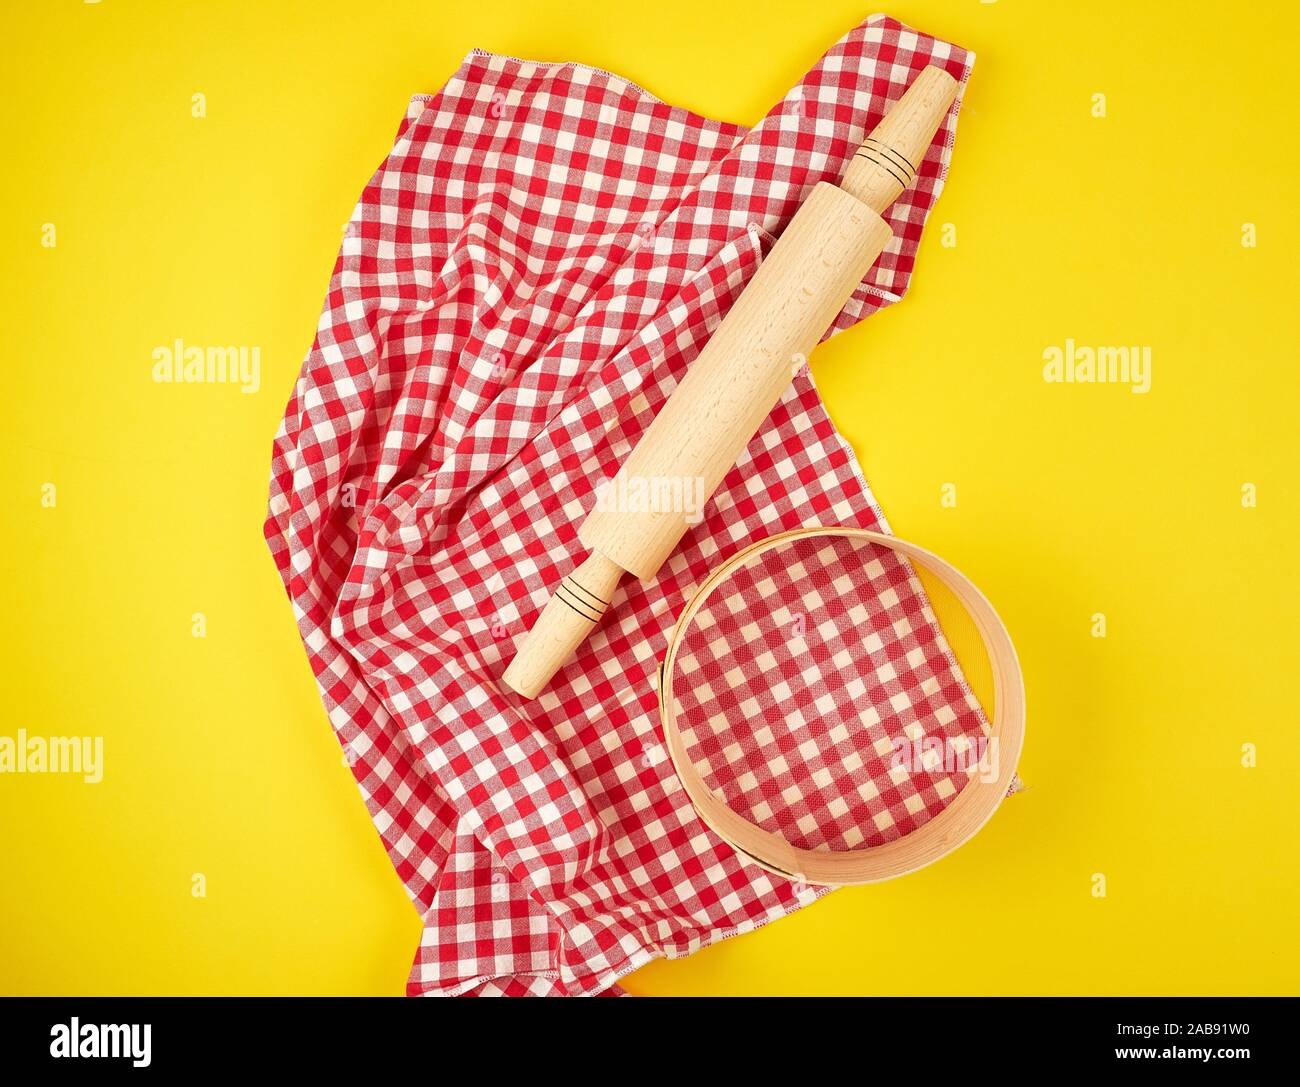 new wooden rolling pin on a red textile napkin and a round sieve for flour, yellow background, top view. Stock Photo